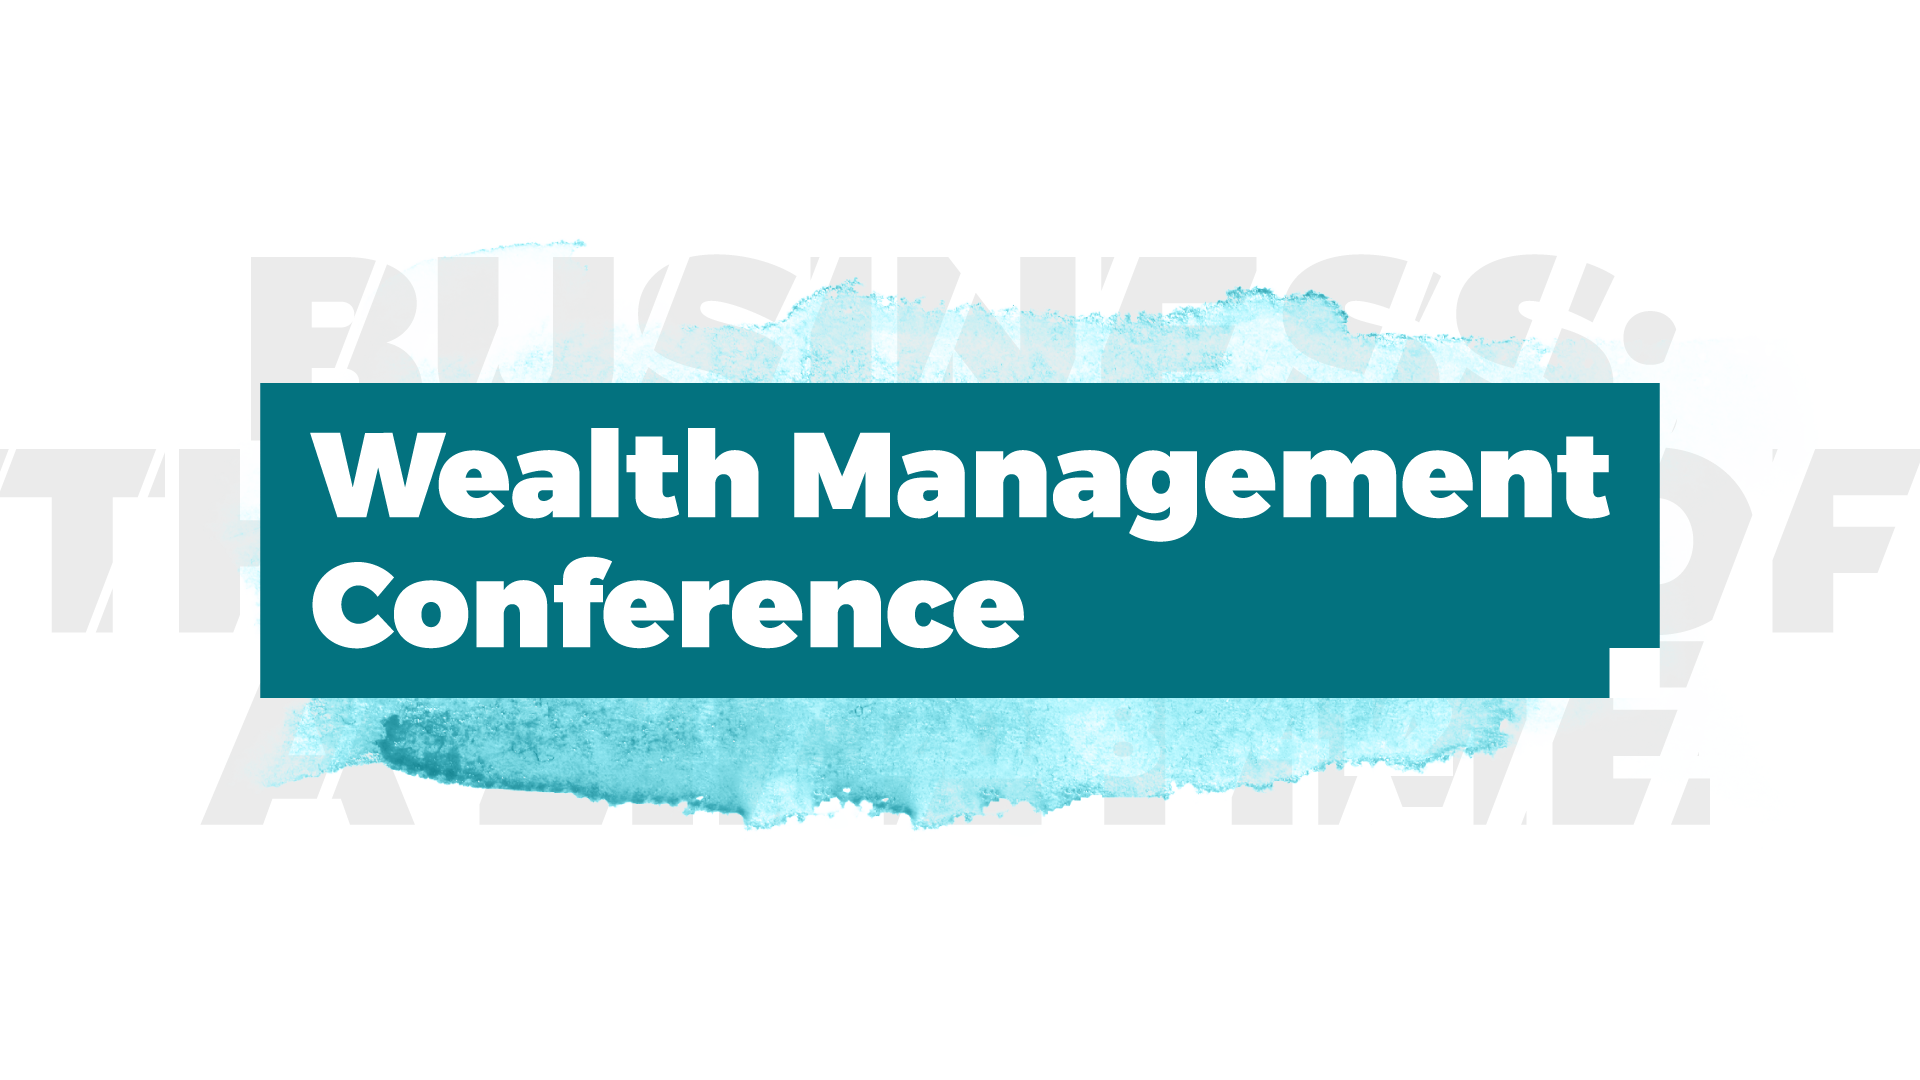 Wealth management conference